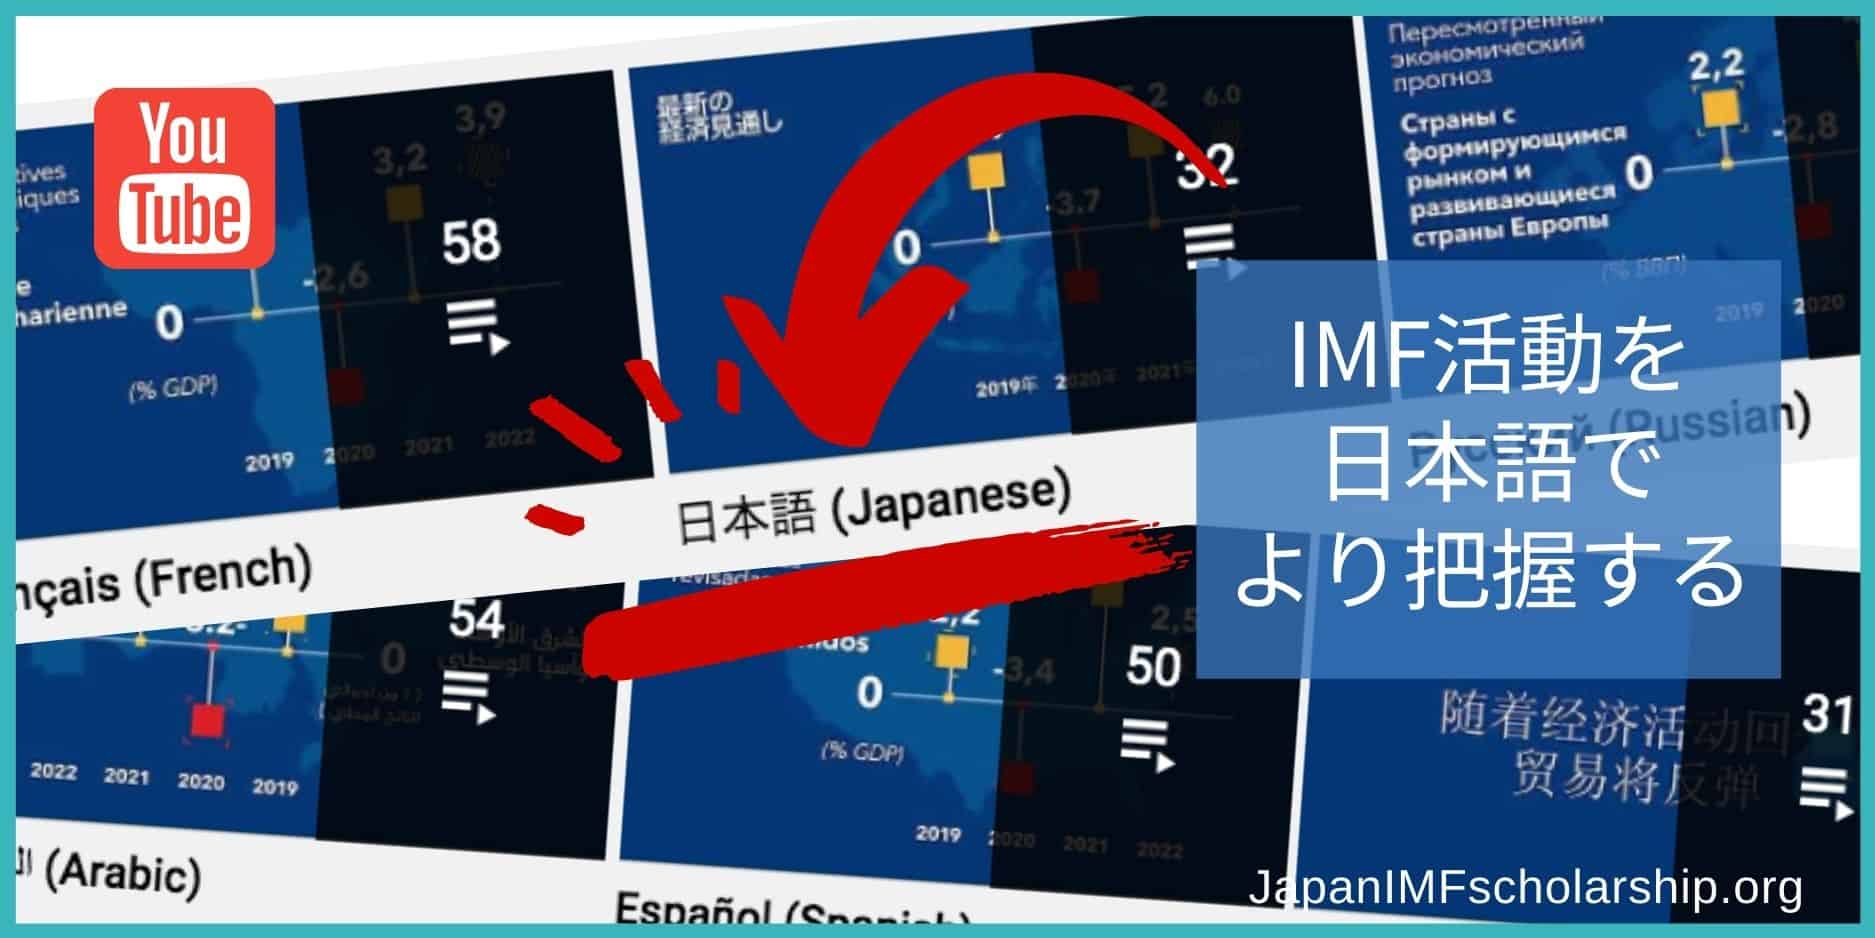 jisp web-fb imf youtube channel in japanese (1)